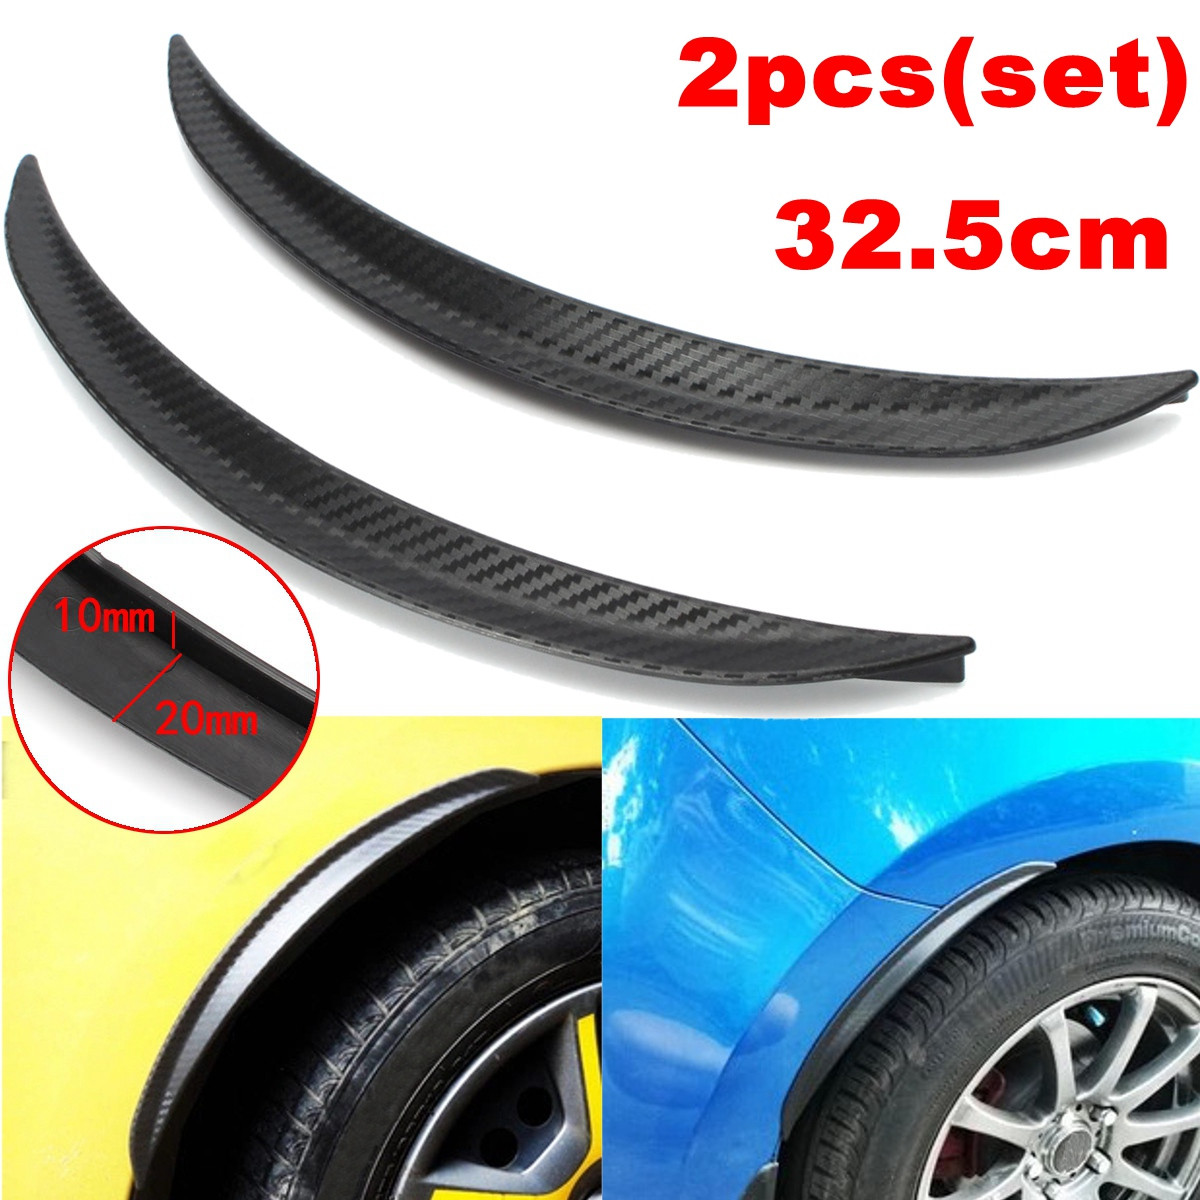 2pcs 32.5cm Car for Fender Flares Carbon Fiber Wheel Arch Eyebrow Eyelid Lips Guard Protector Universal